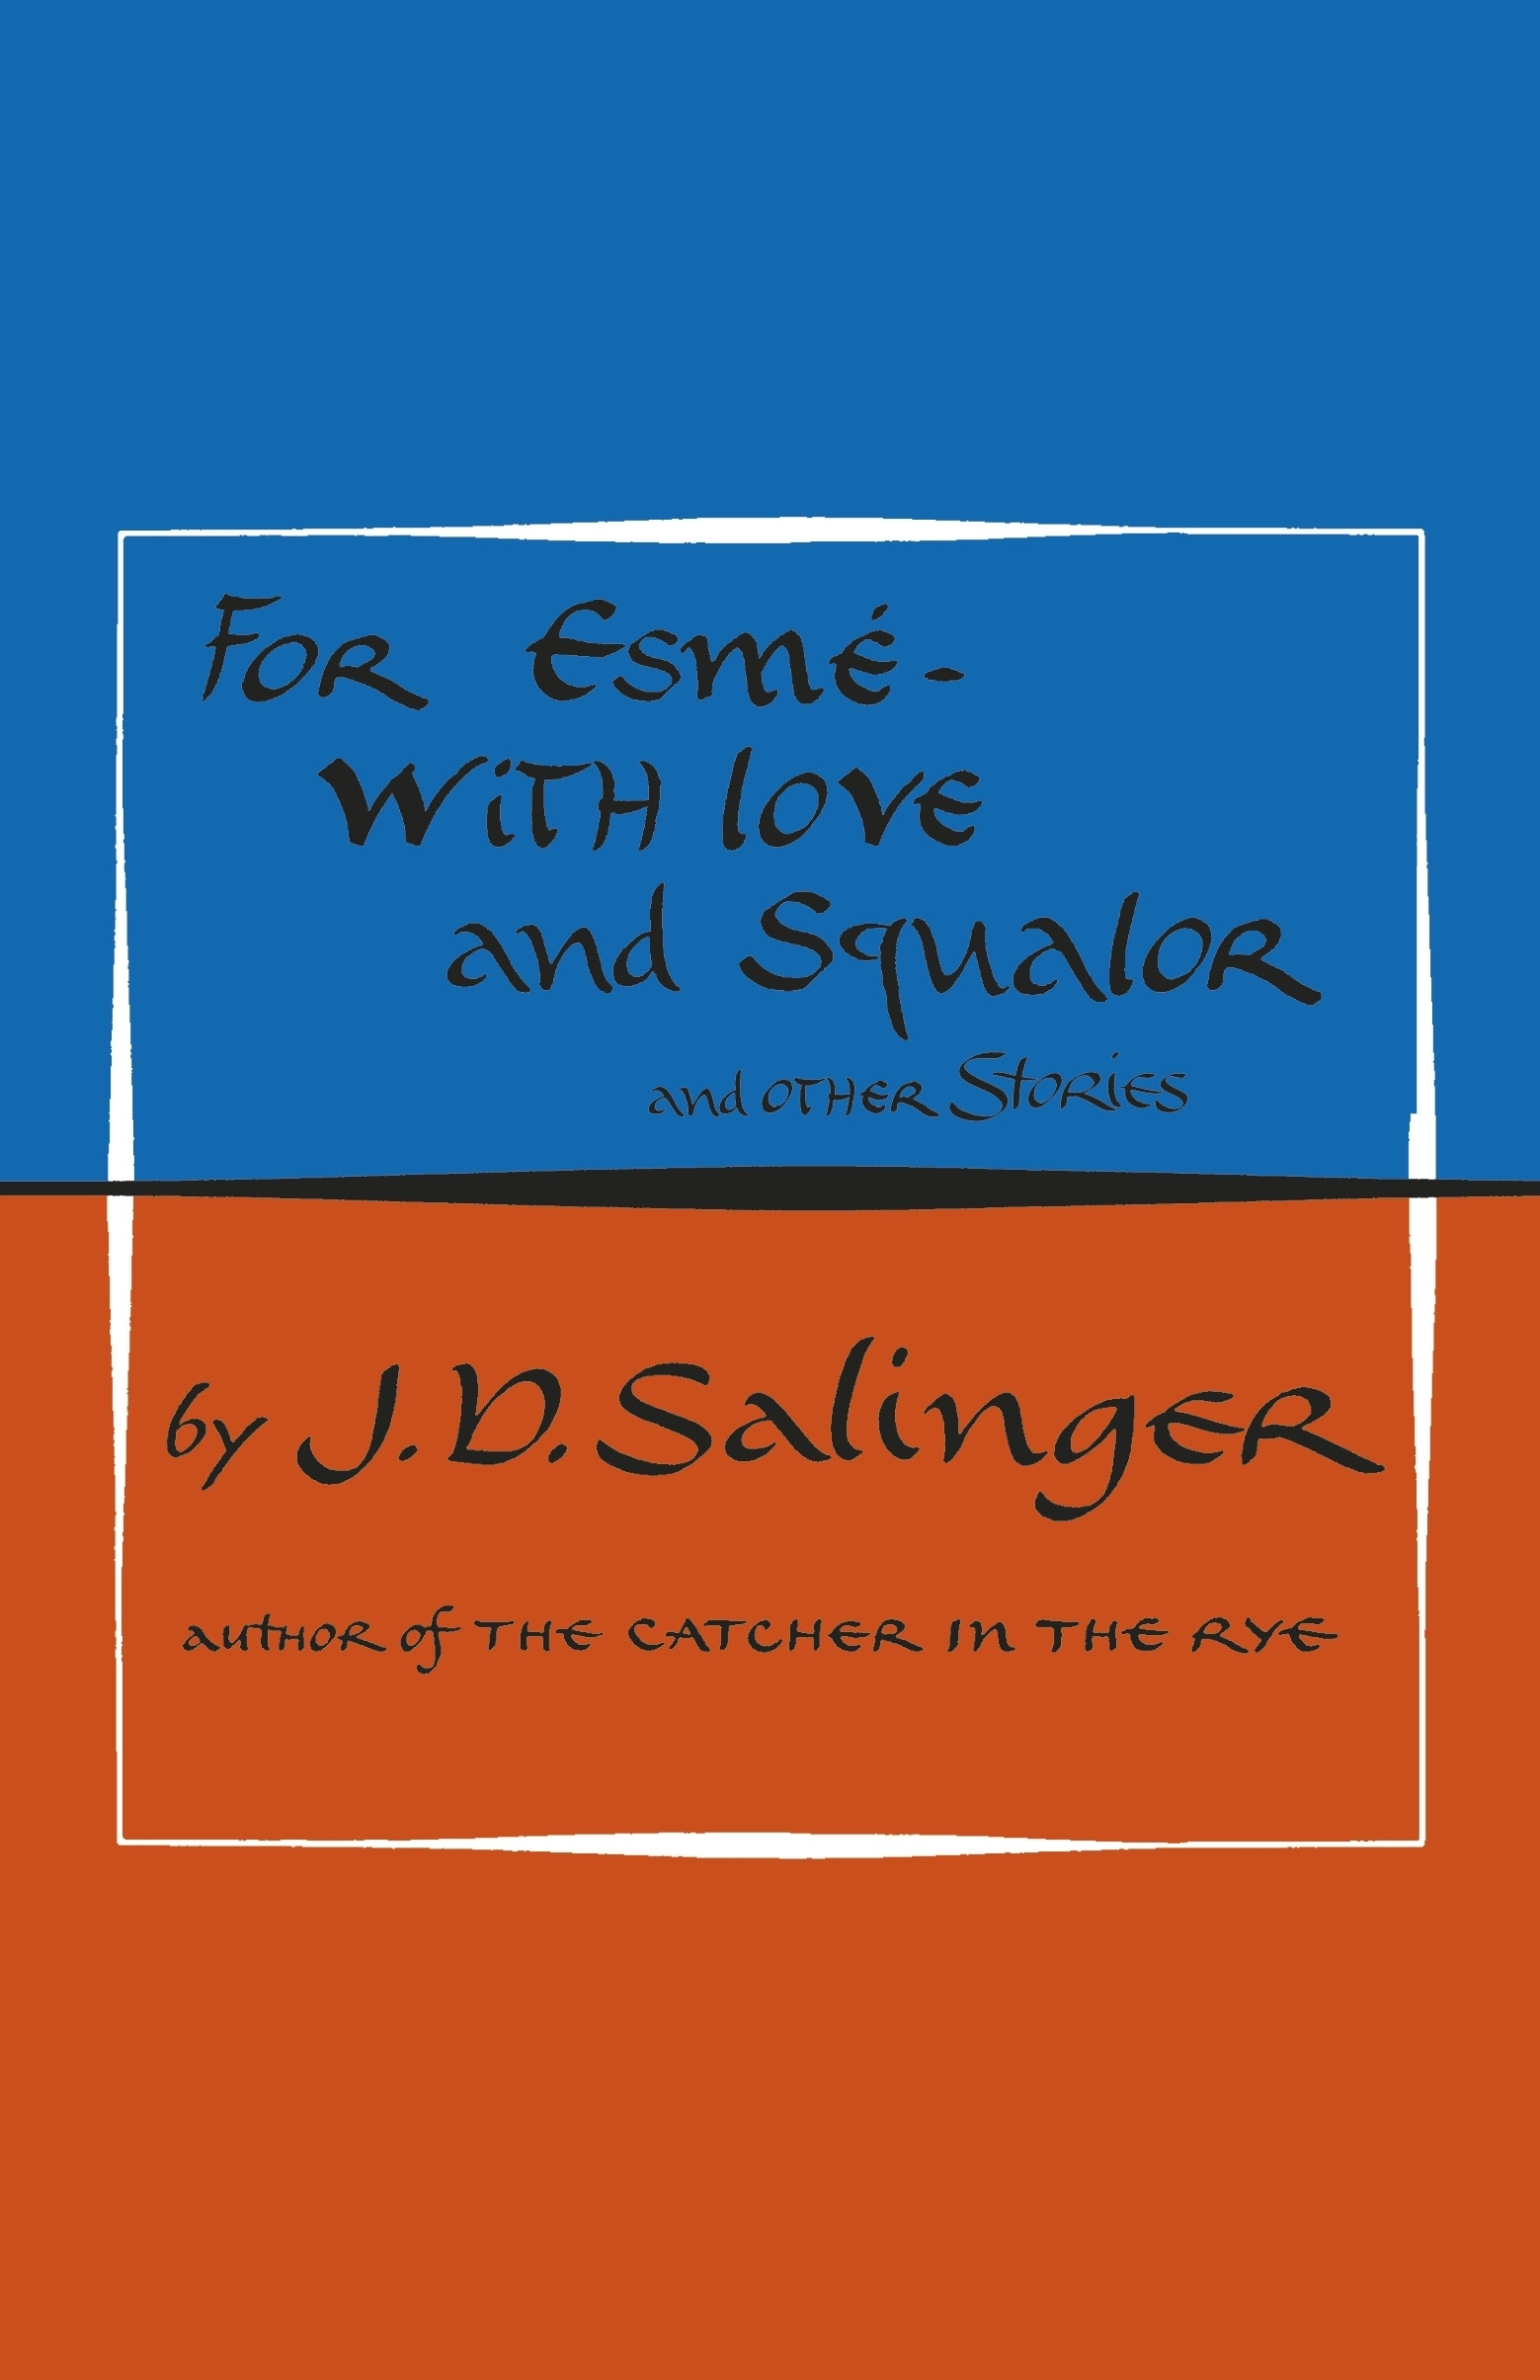 For Esmé - with Love and Squalor: And Other Stories